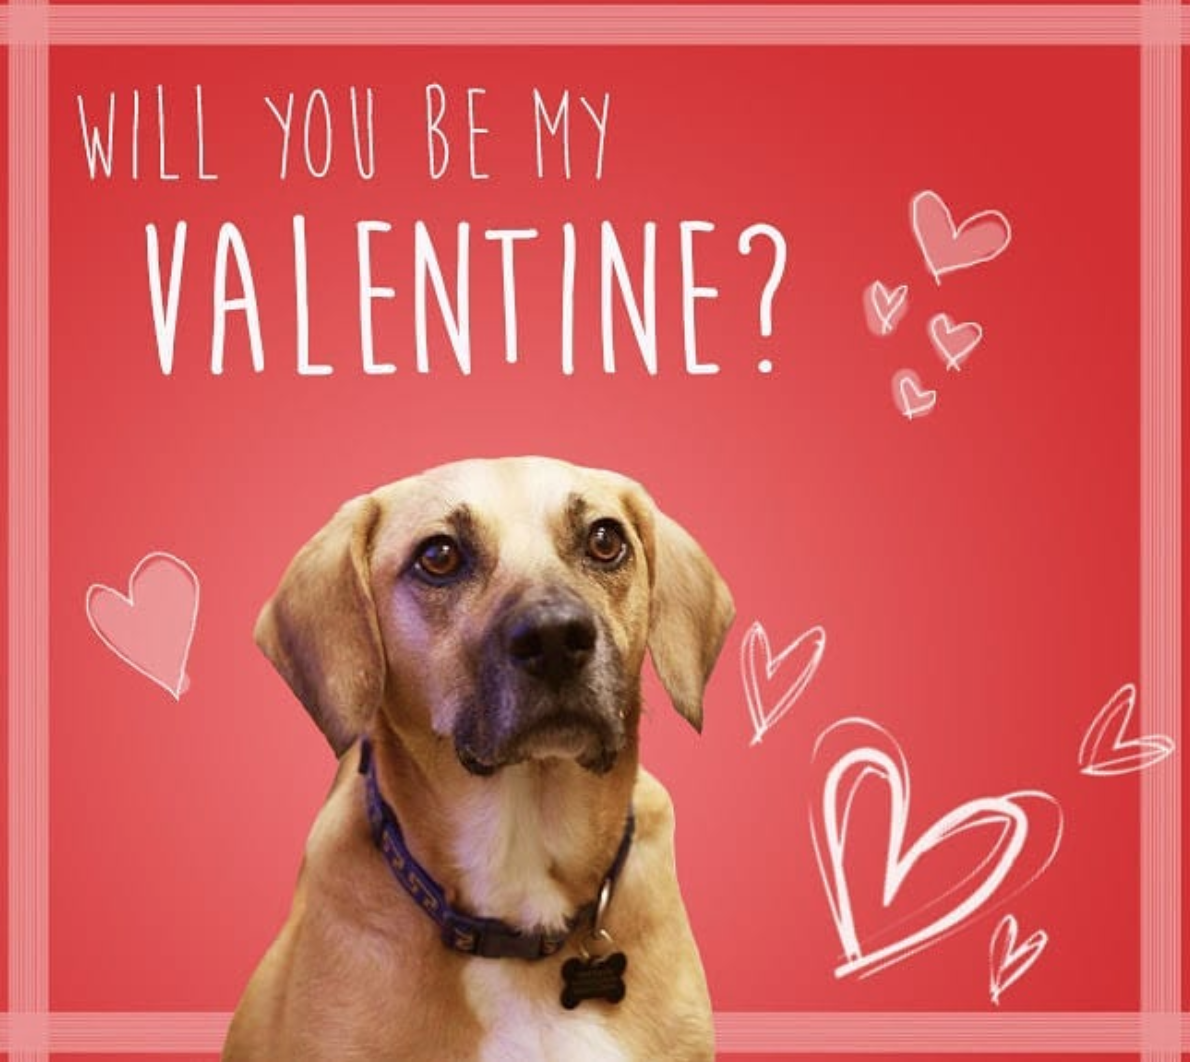 We know Valentine's Day isn't for everyone, but even if you're feeling the post-holiday blues, these D.C. dogs are here to lift your spirits. Here are some of the cutest pooches from Instagram to save you from your love hangover. (Image via @umddoglab)